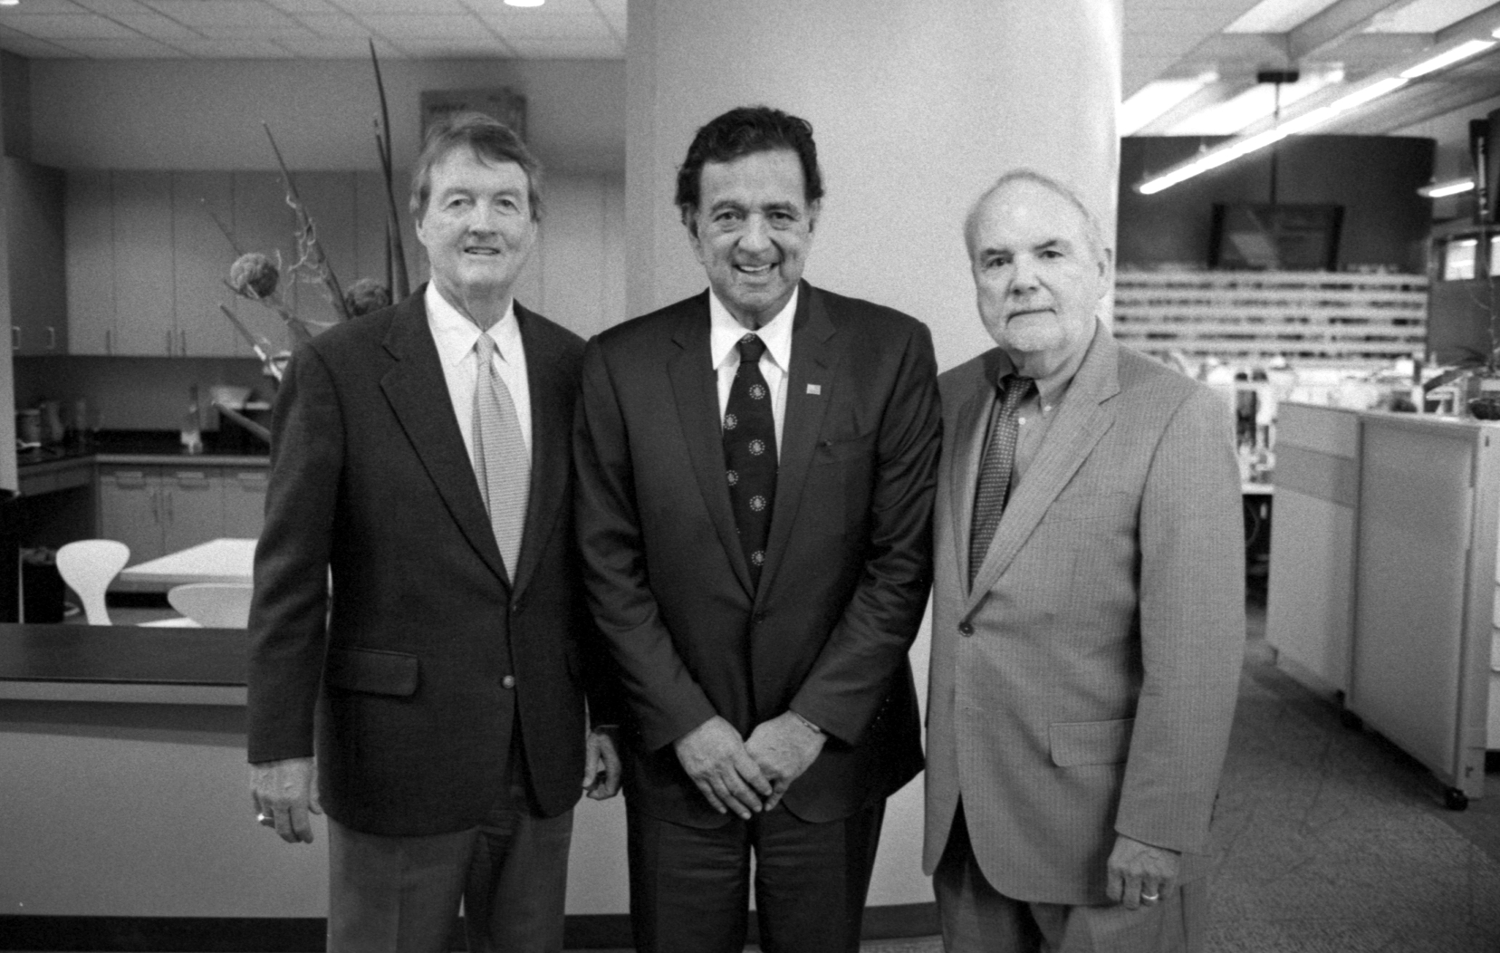 Governor Bill Richardson in Texas visiting the Briscoe Center for American History